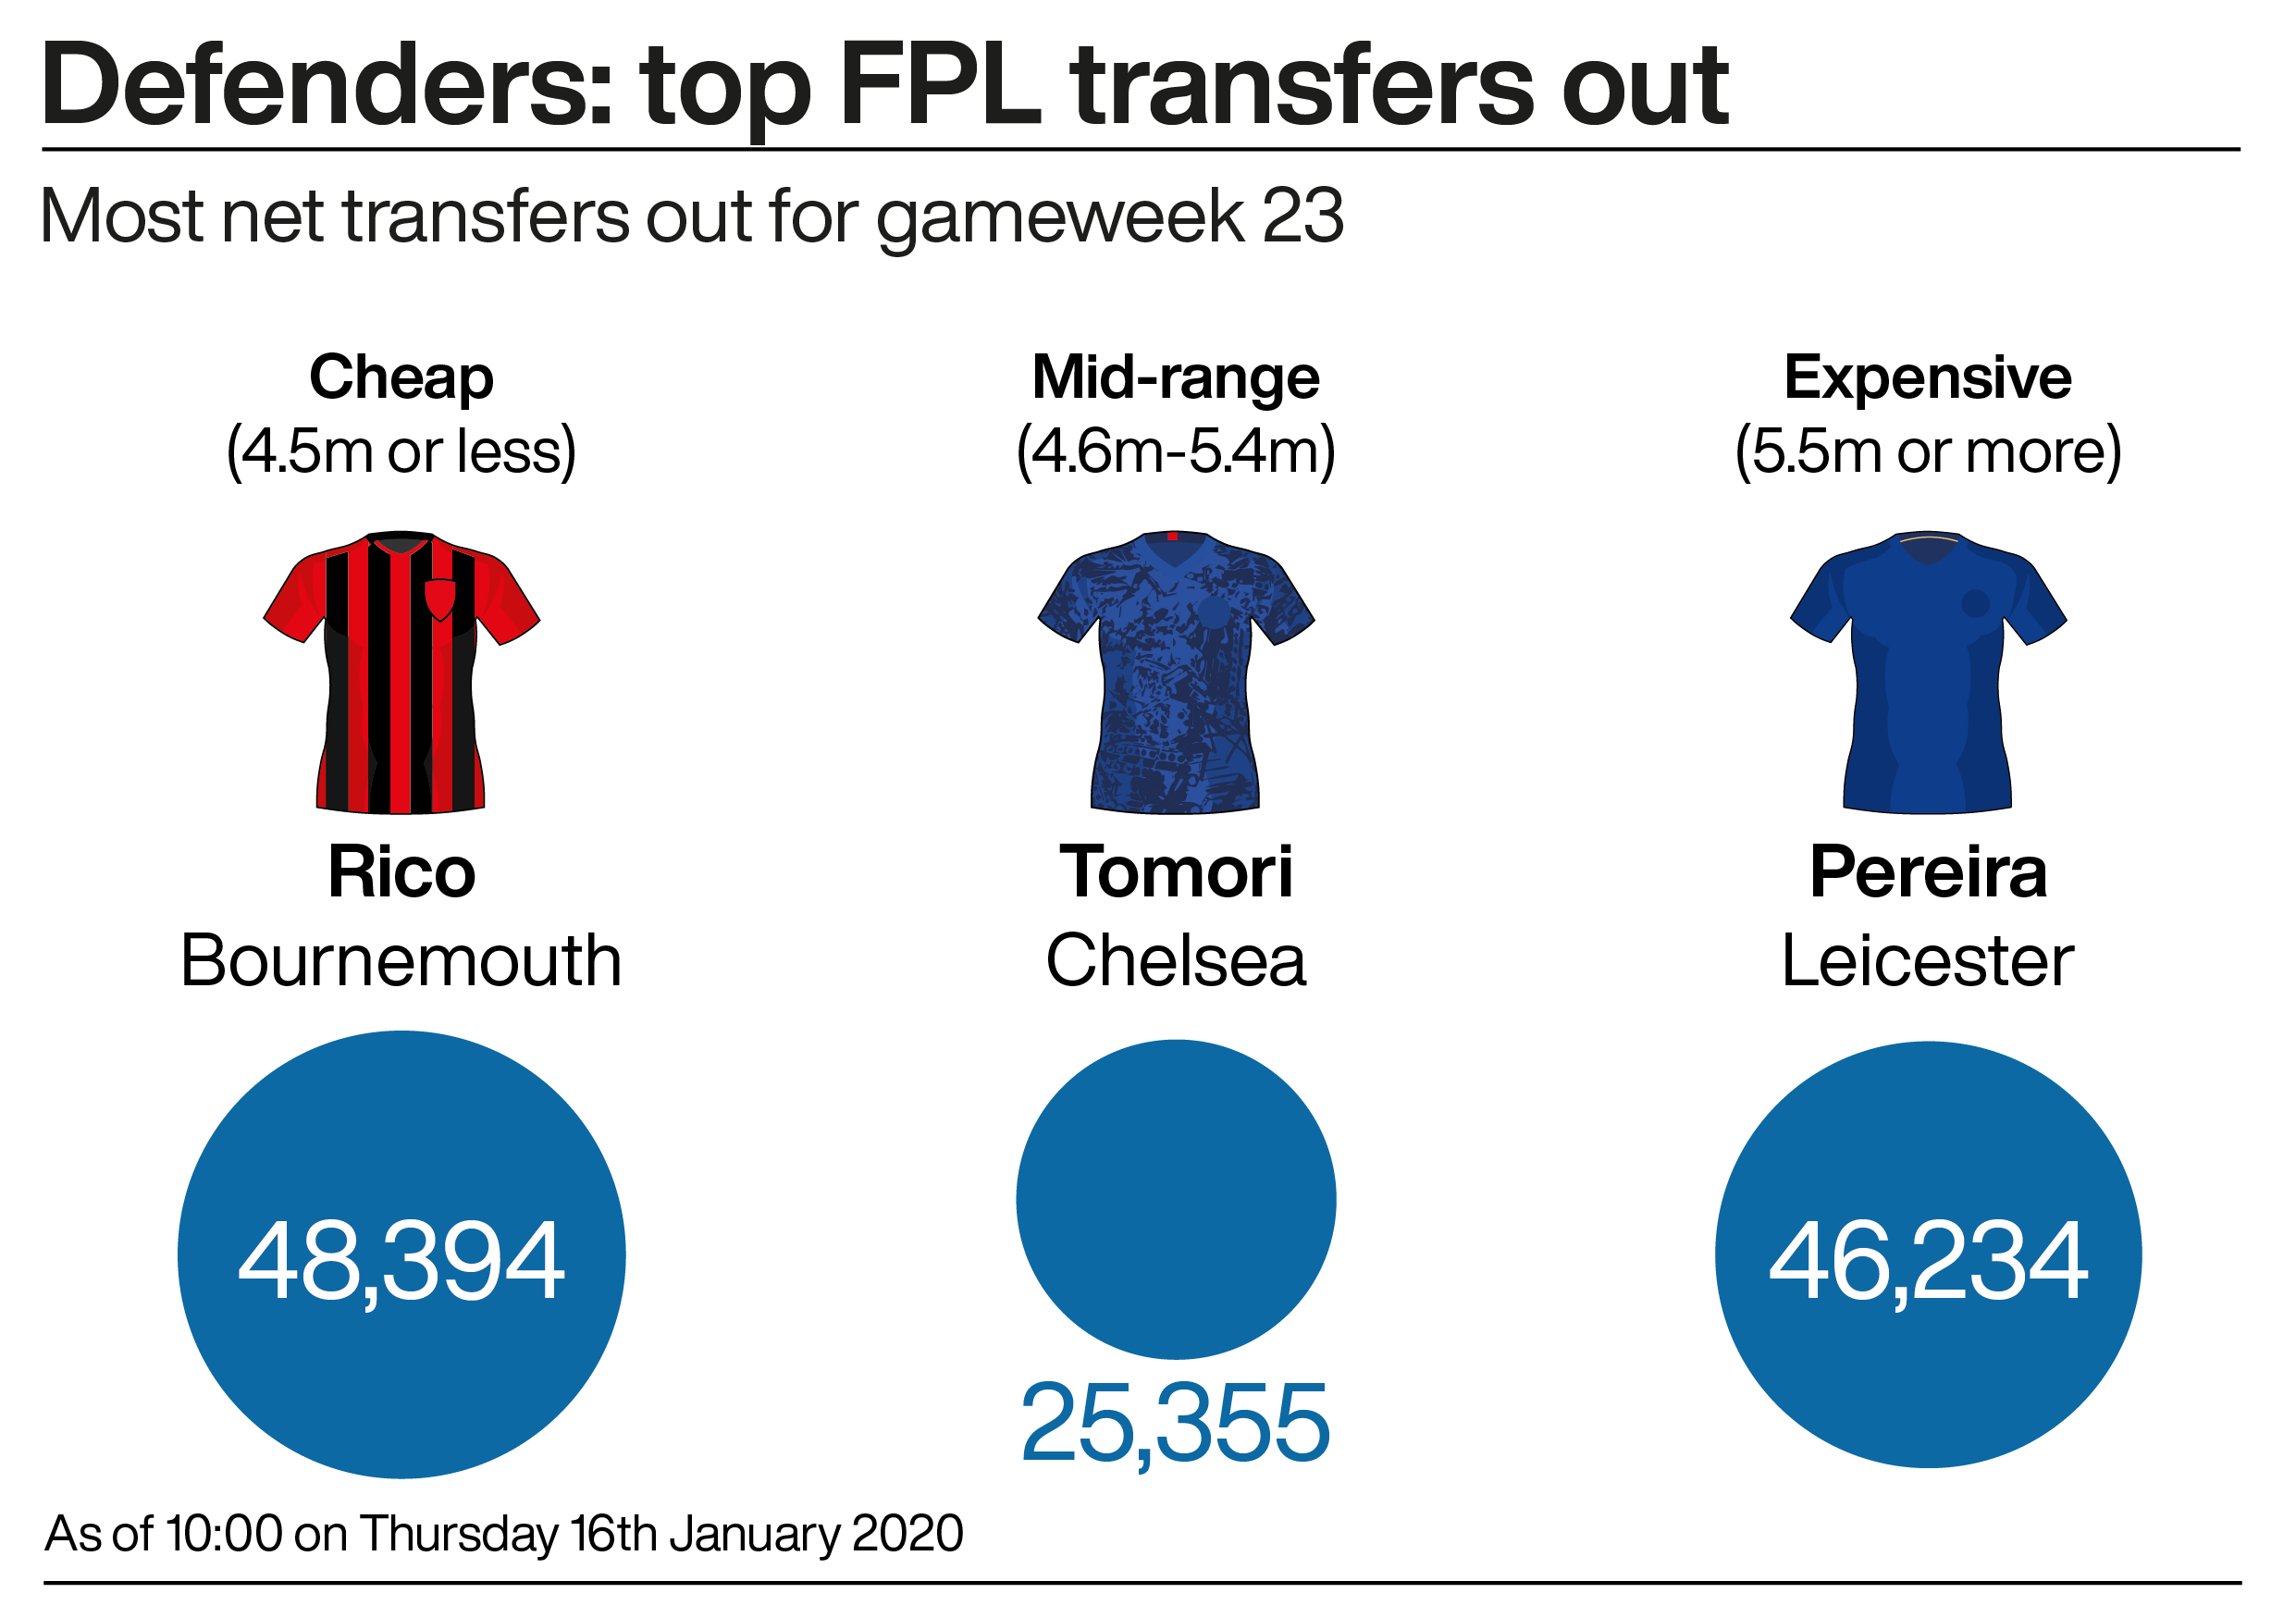 The top transfers out in defence in gameweek 23